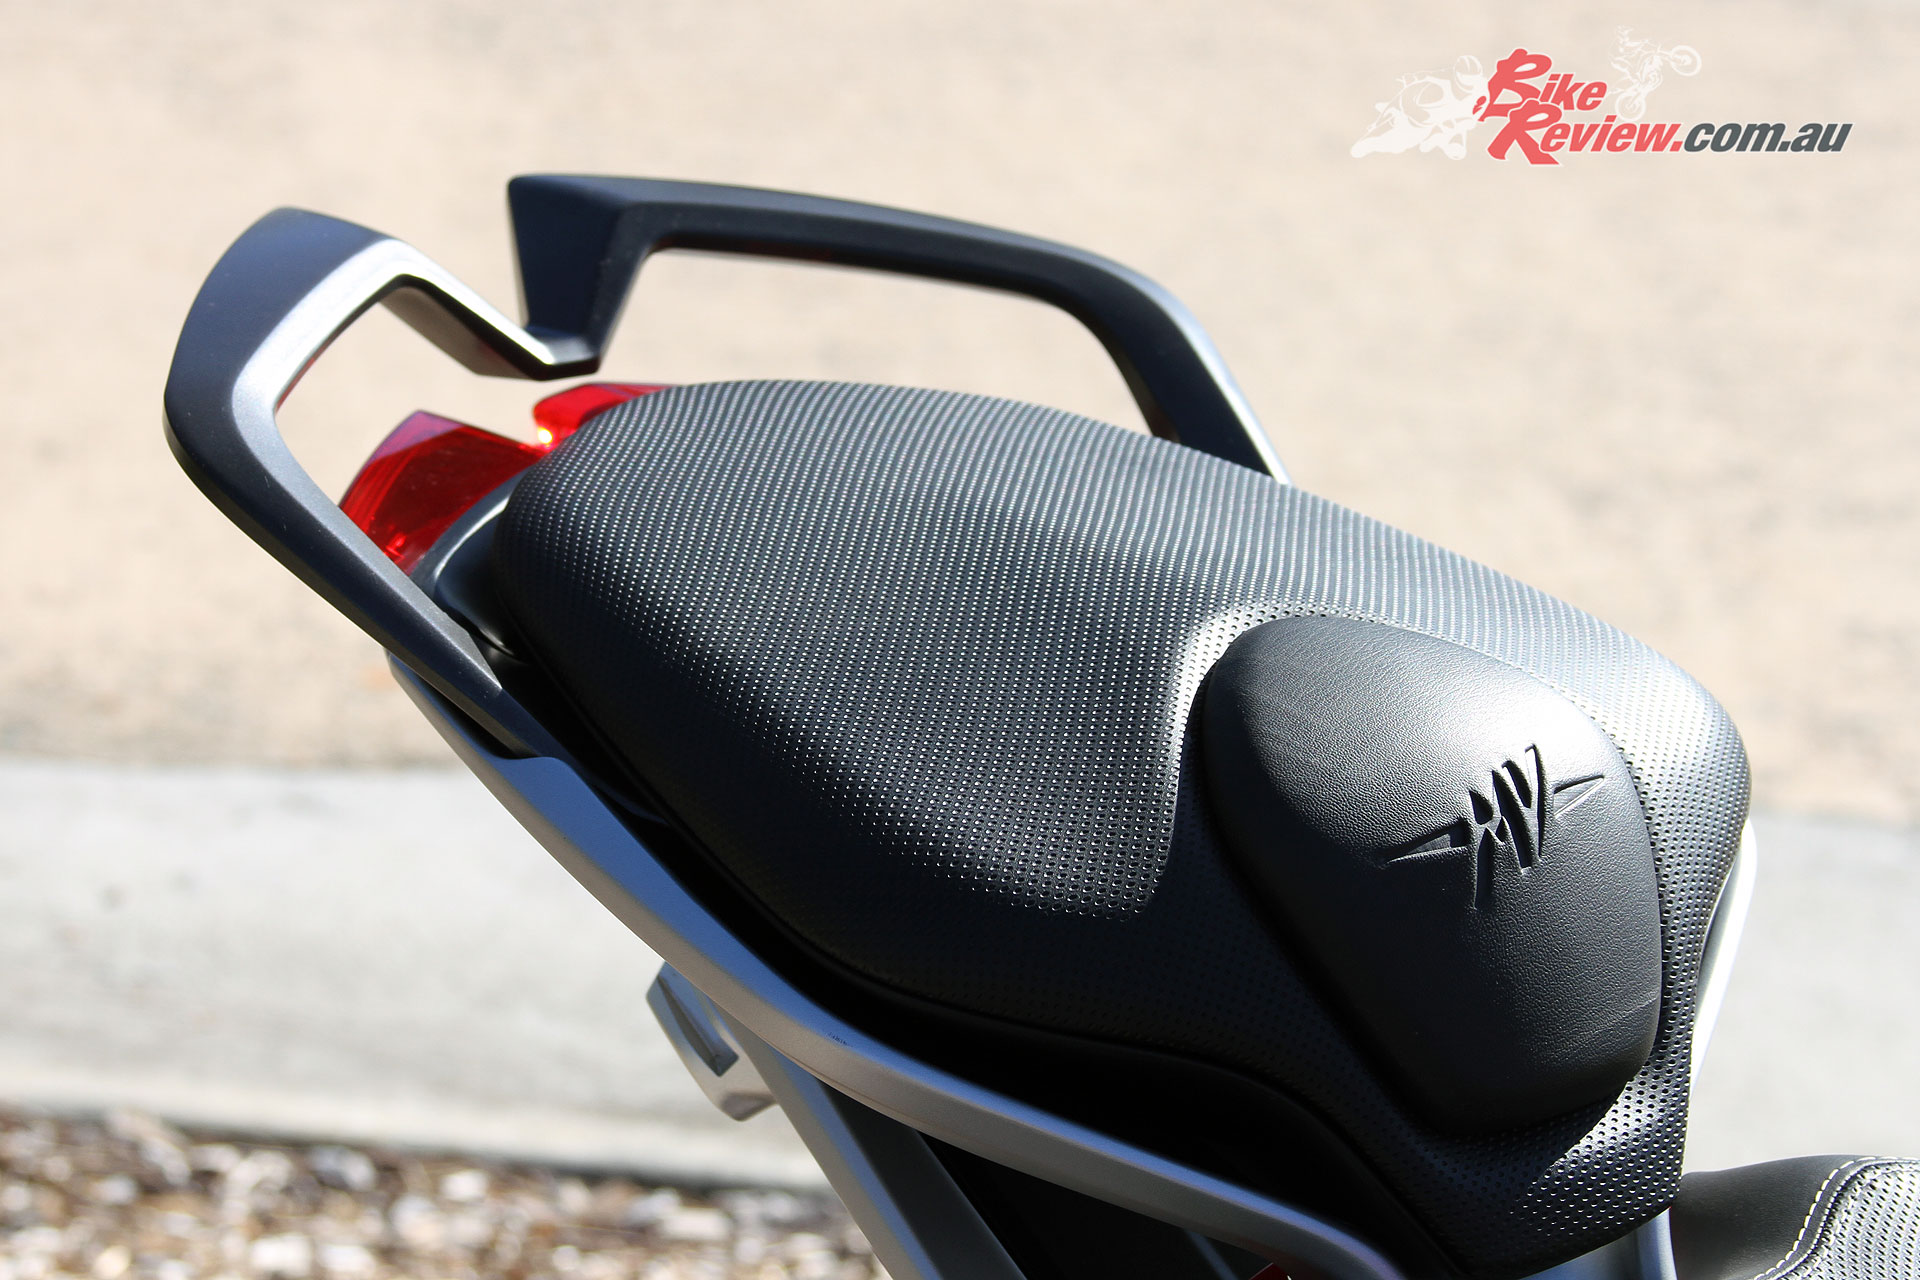 The stepped pillion seat gives them more leg room and a grab rail offers a point to hold onto, but does raise the pillion up behind the rider.